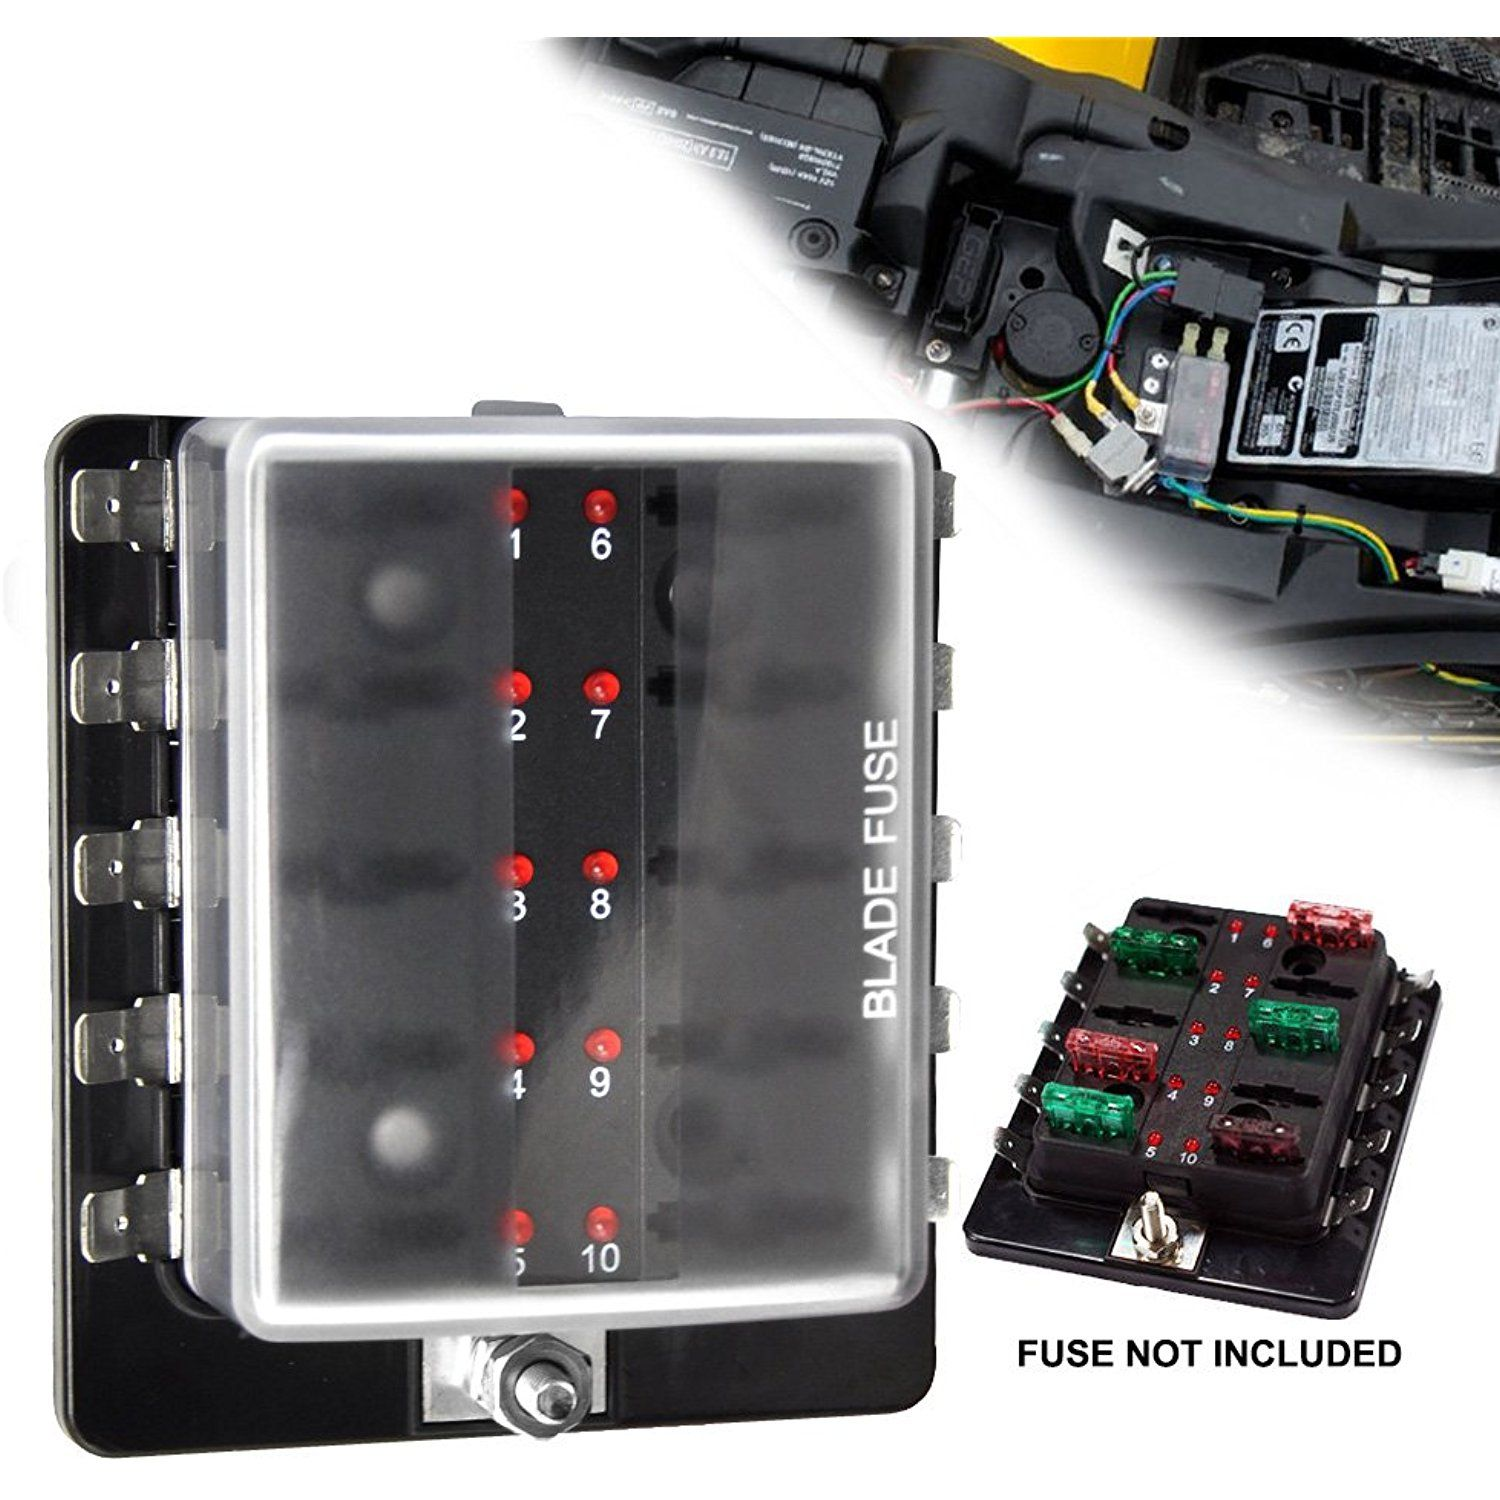 small resolution of liteway 10 way blade fuse holder box 12 32v led illuminated automotive fuse block for car boat marine trike with led warning light kit 2 years warranty